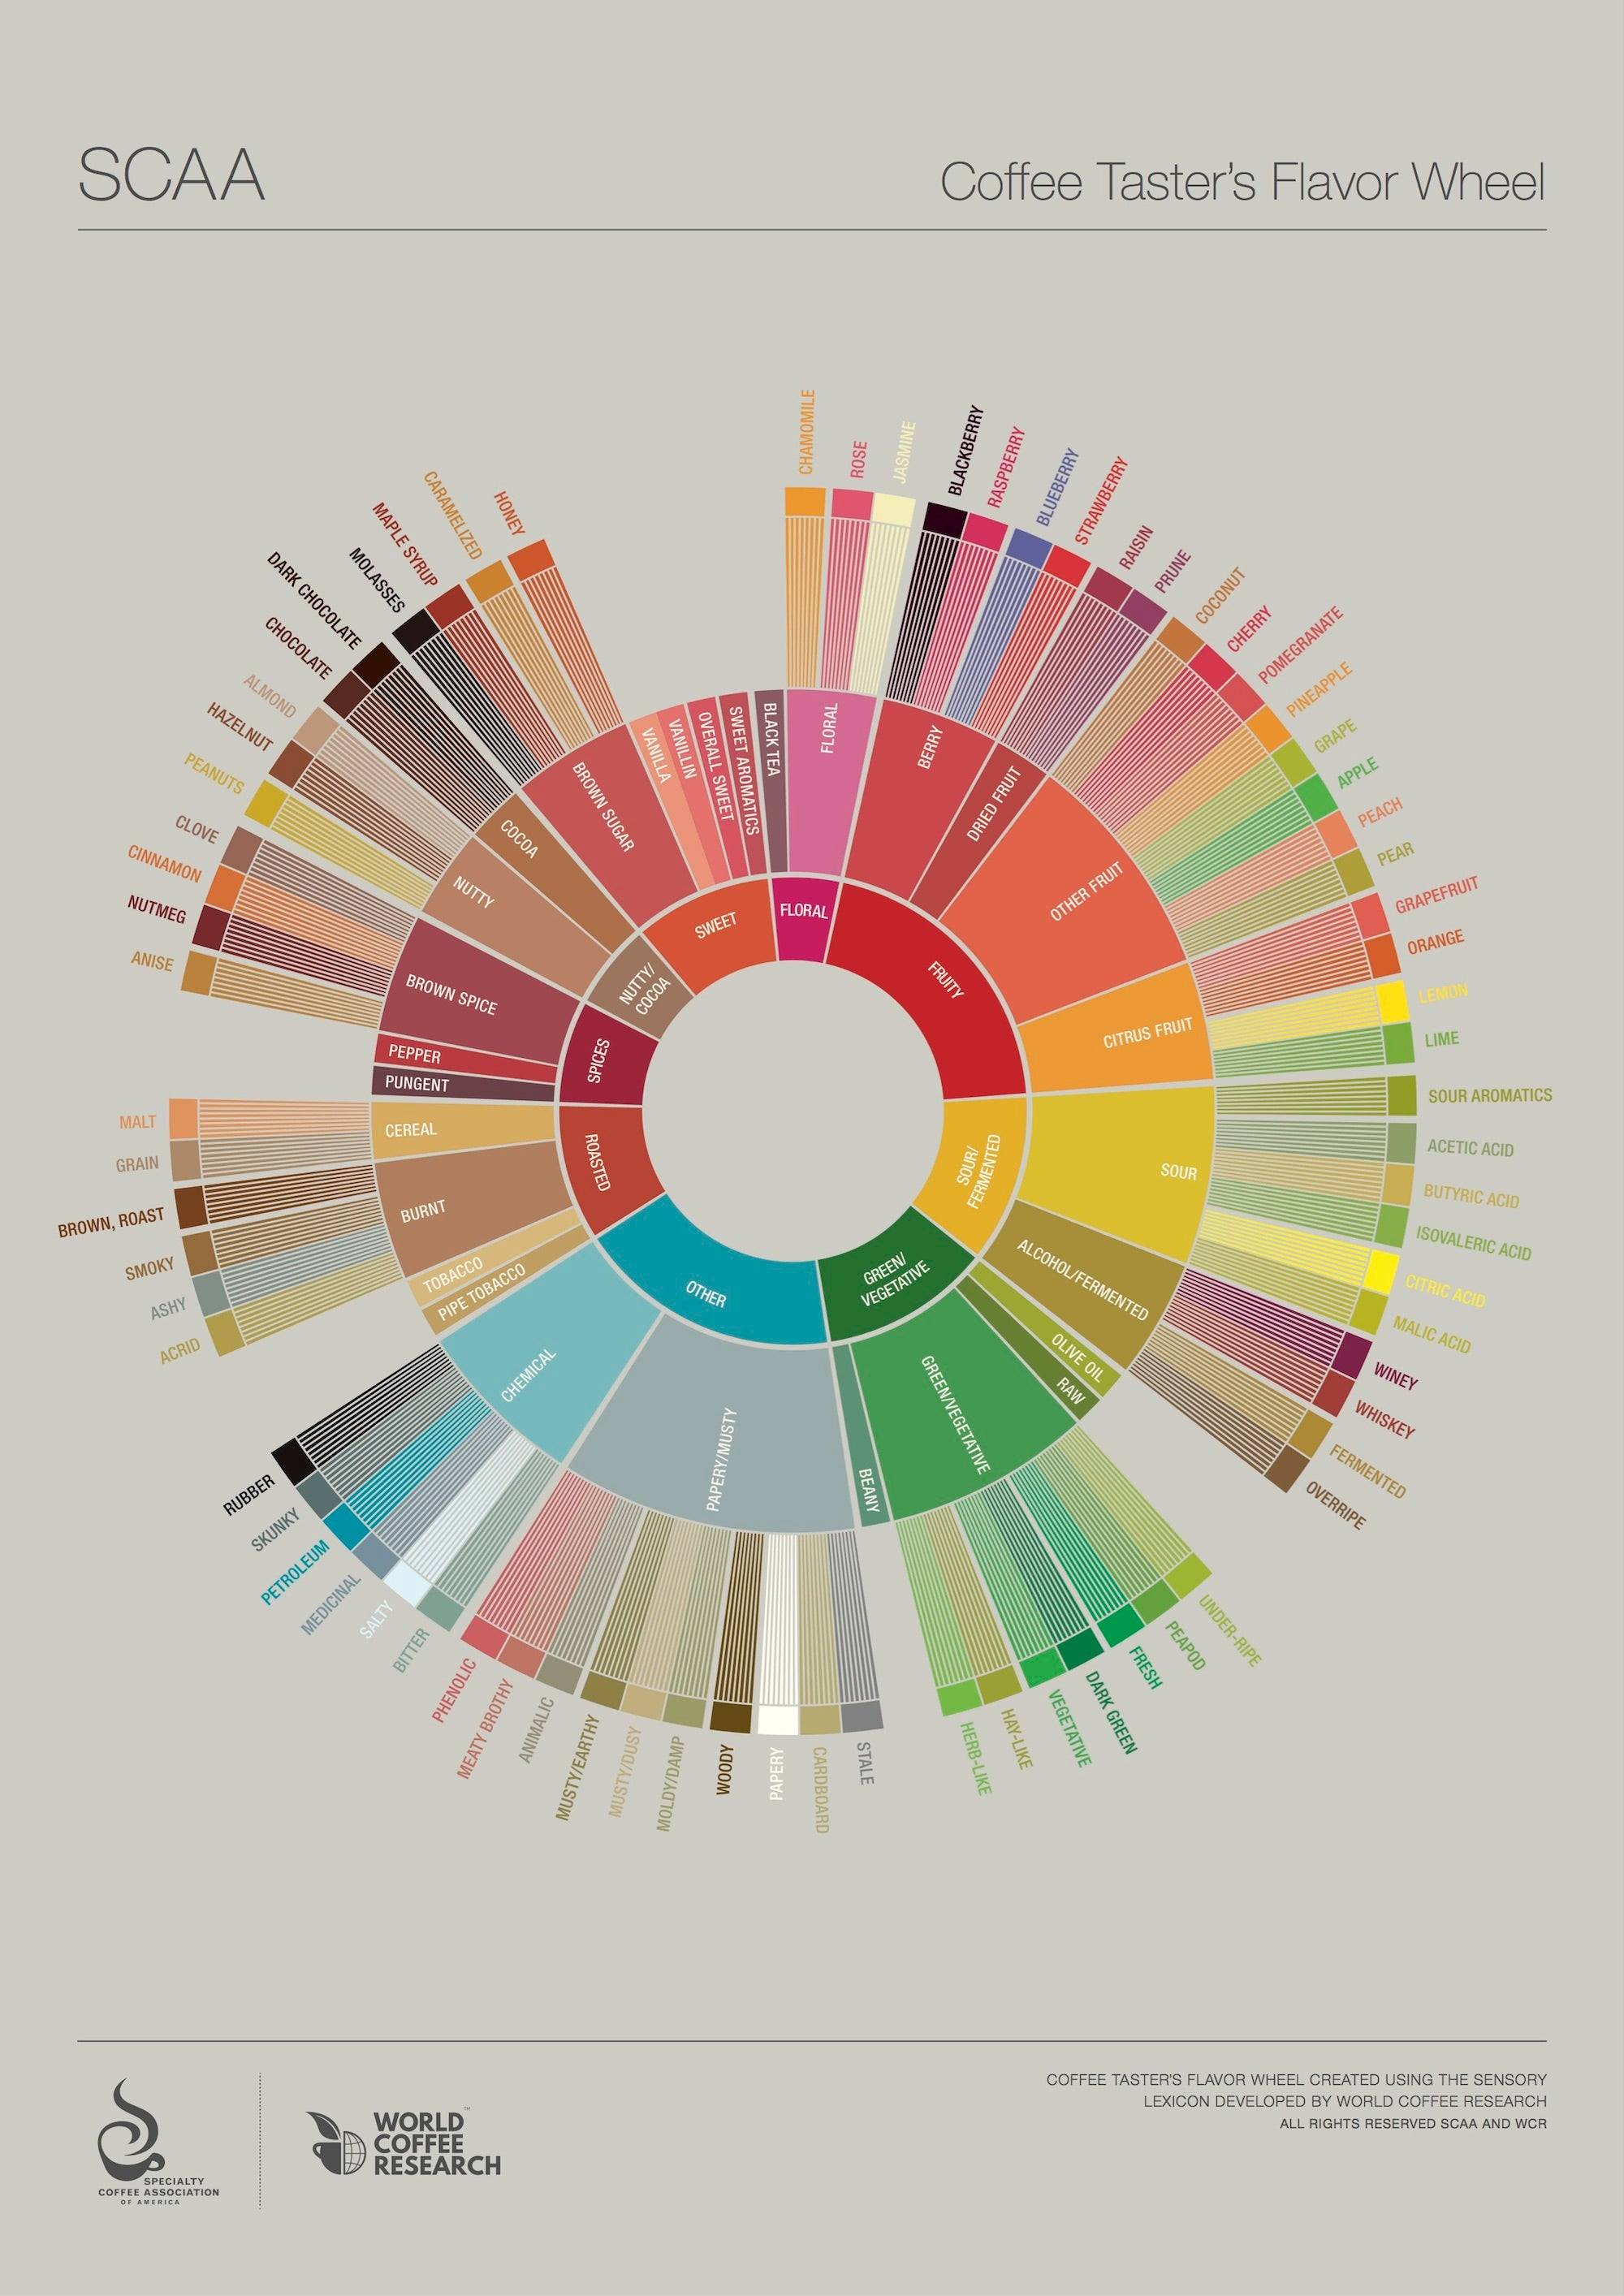 Explore the Flavours in Your Coffee with This Tasting Wheel